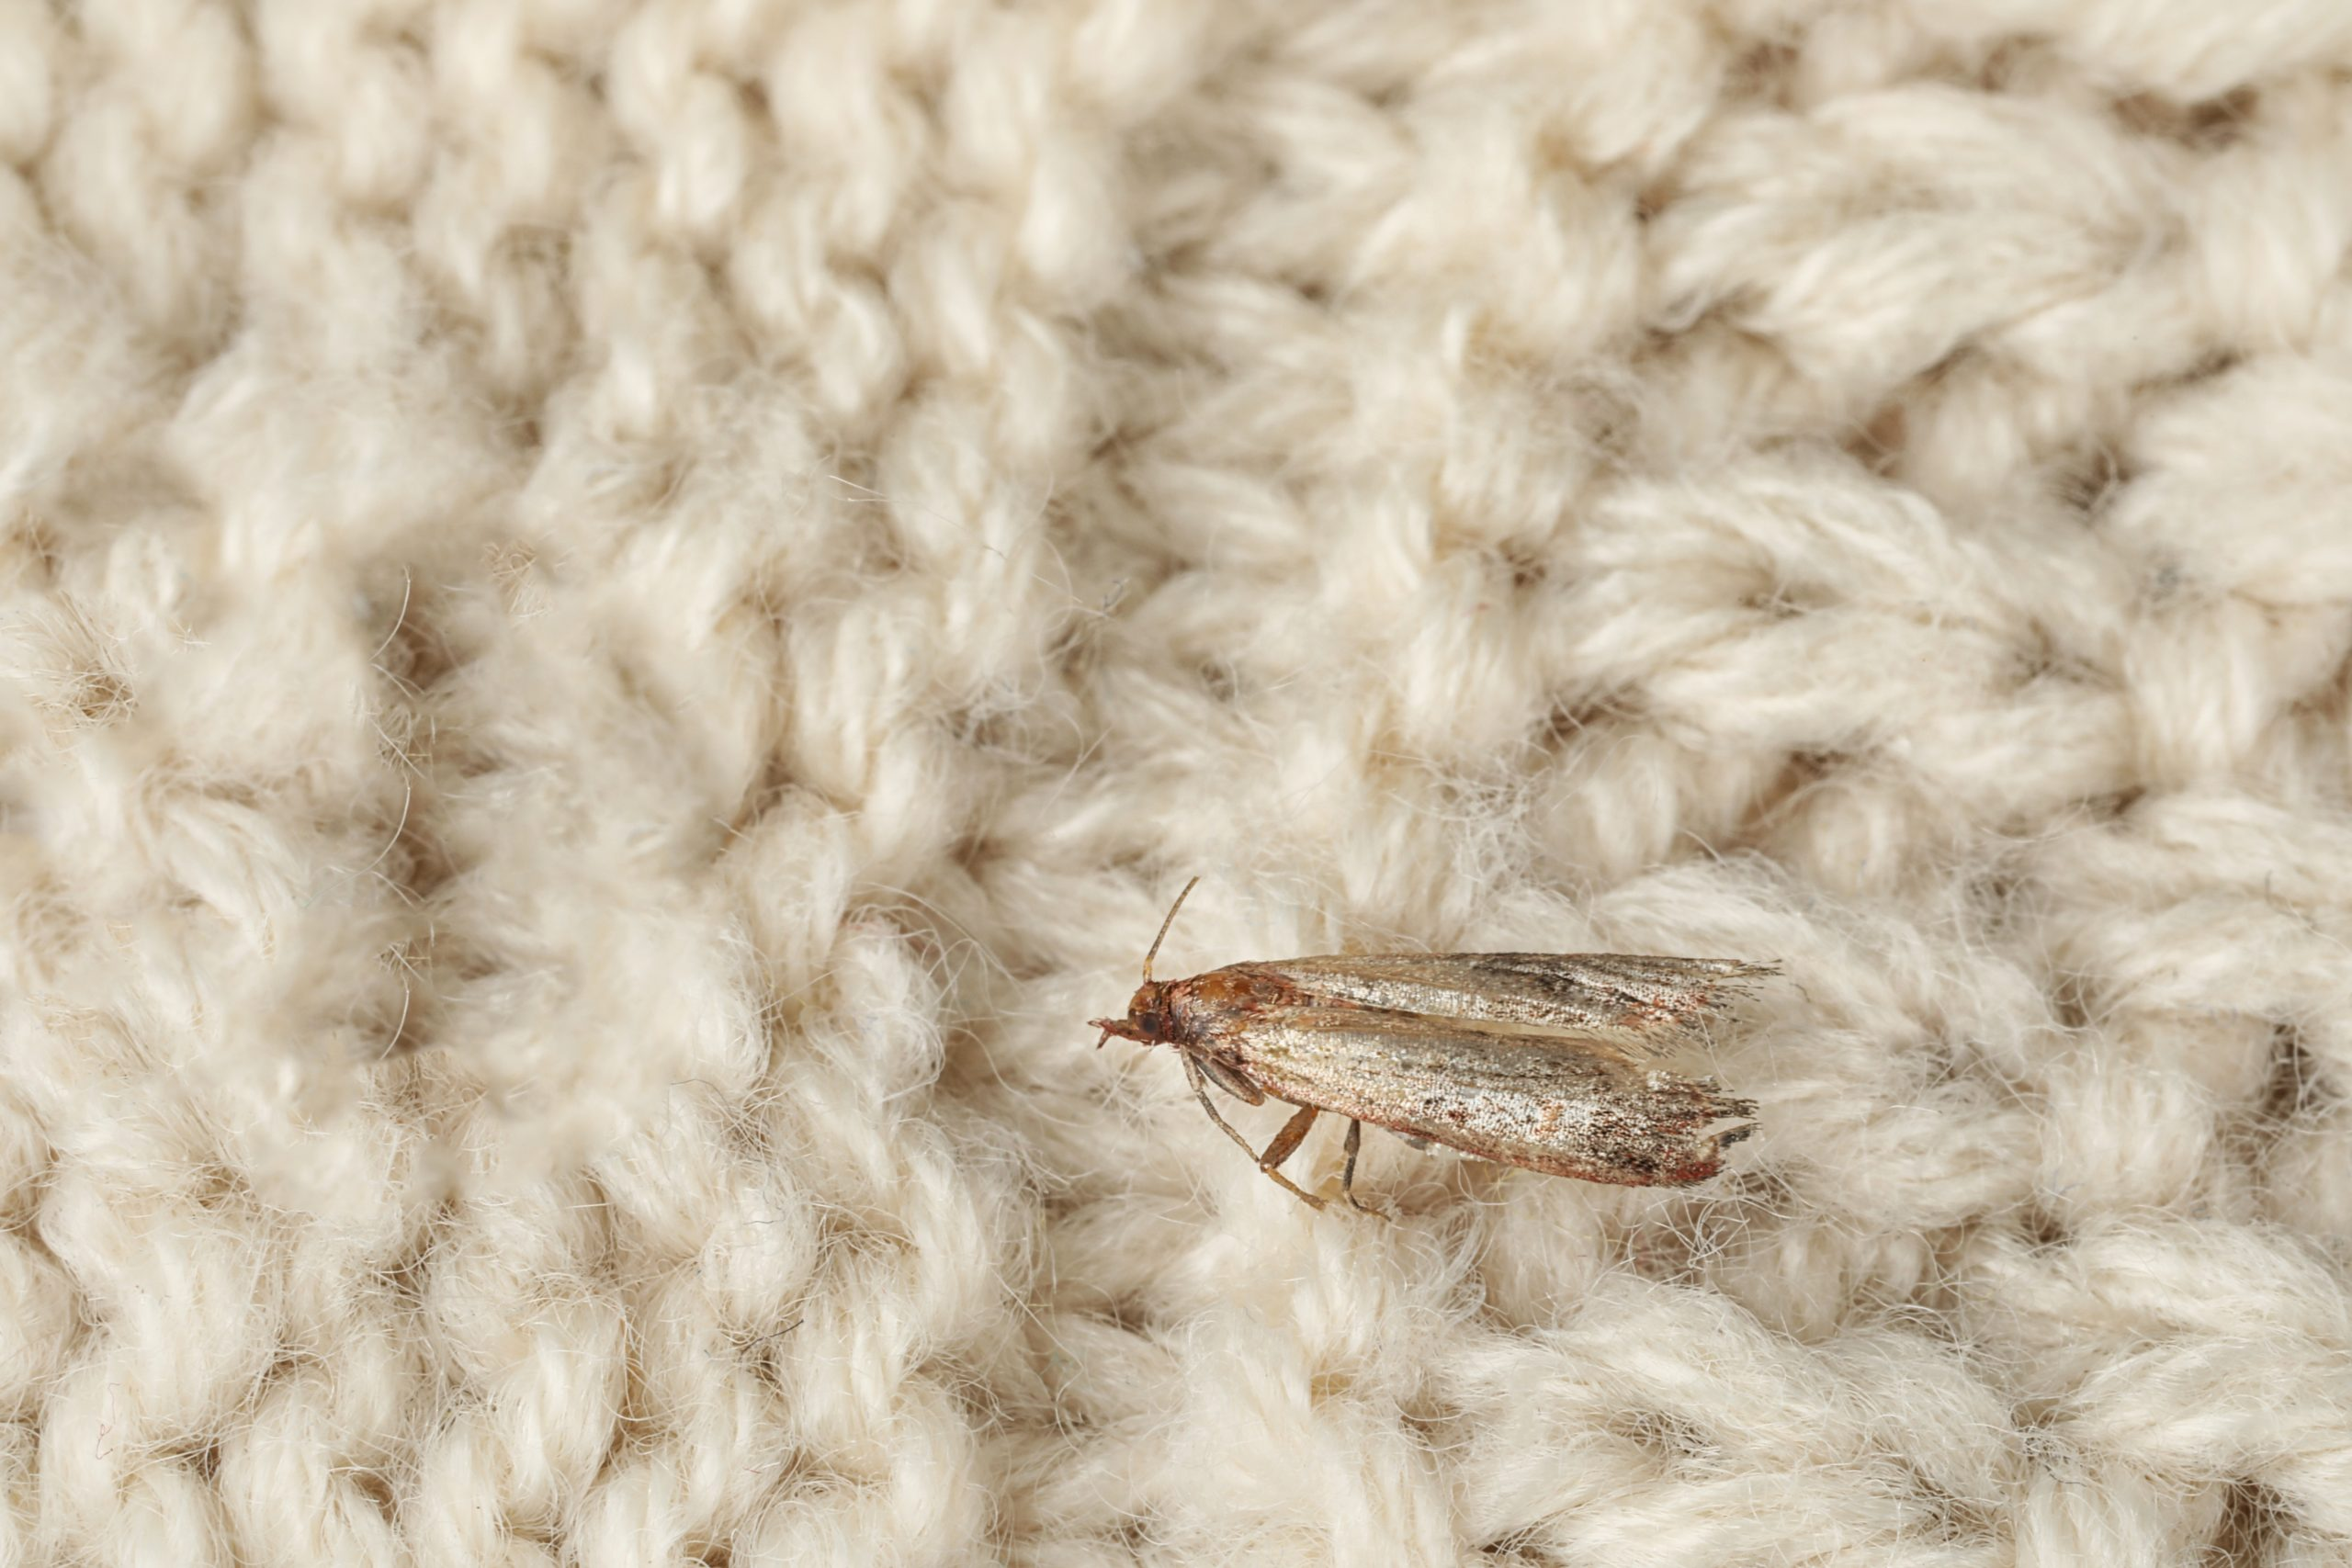 Common clothes moth (Tineola bisselliella) on beige knitted fabric | Total Wardrobe Care